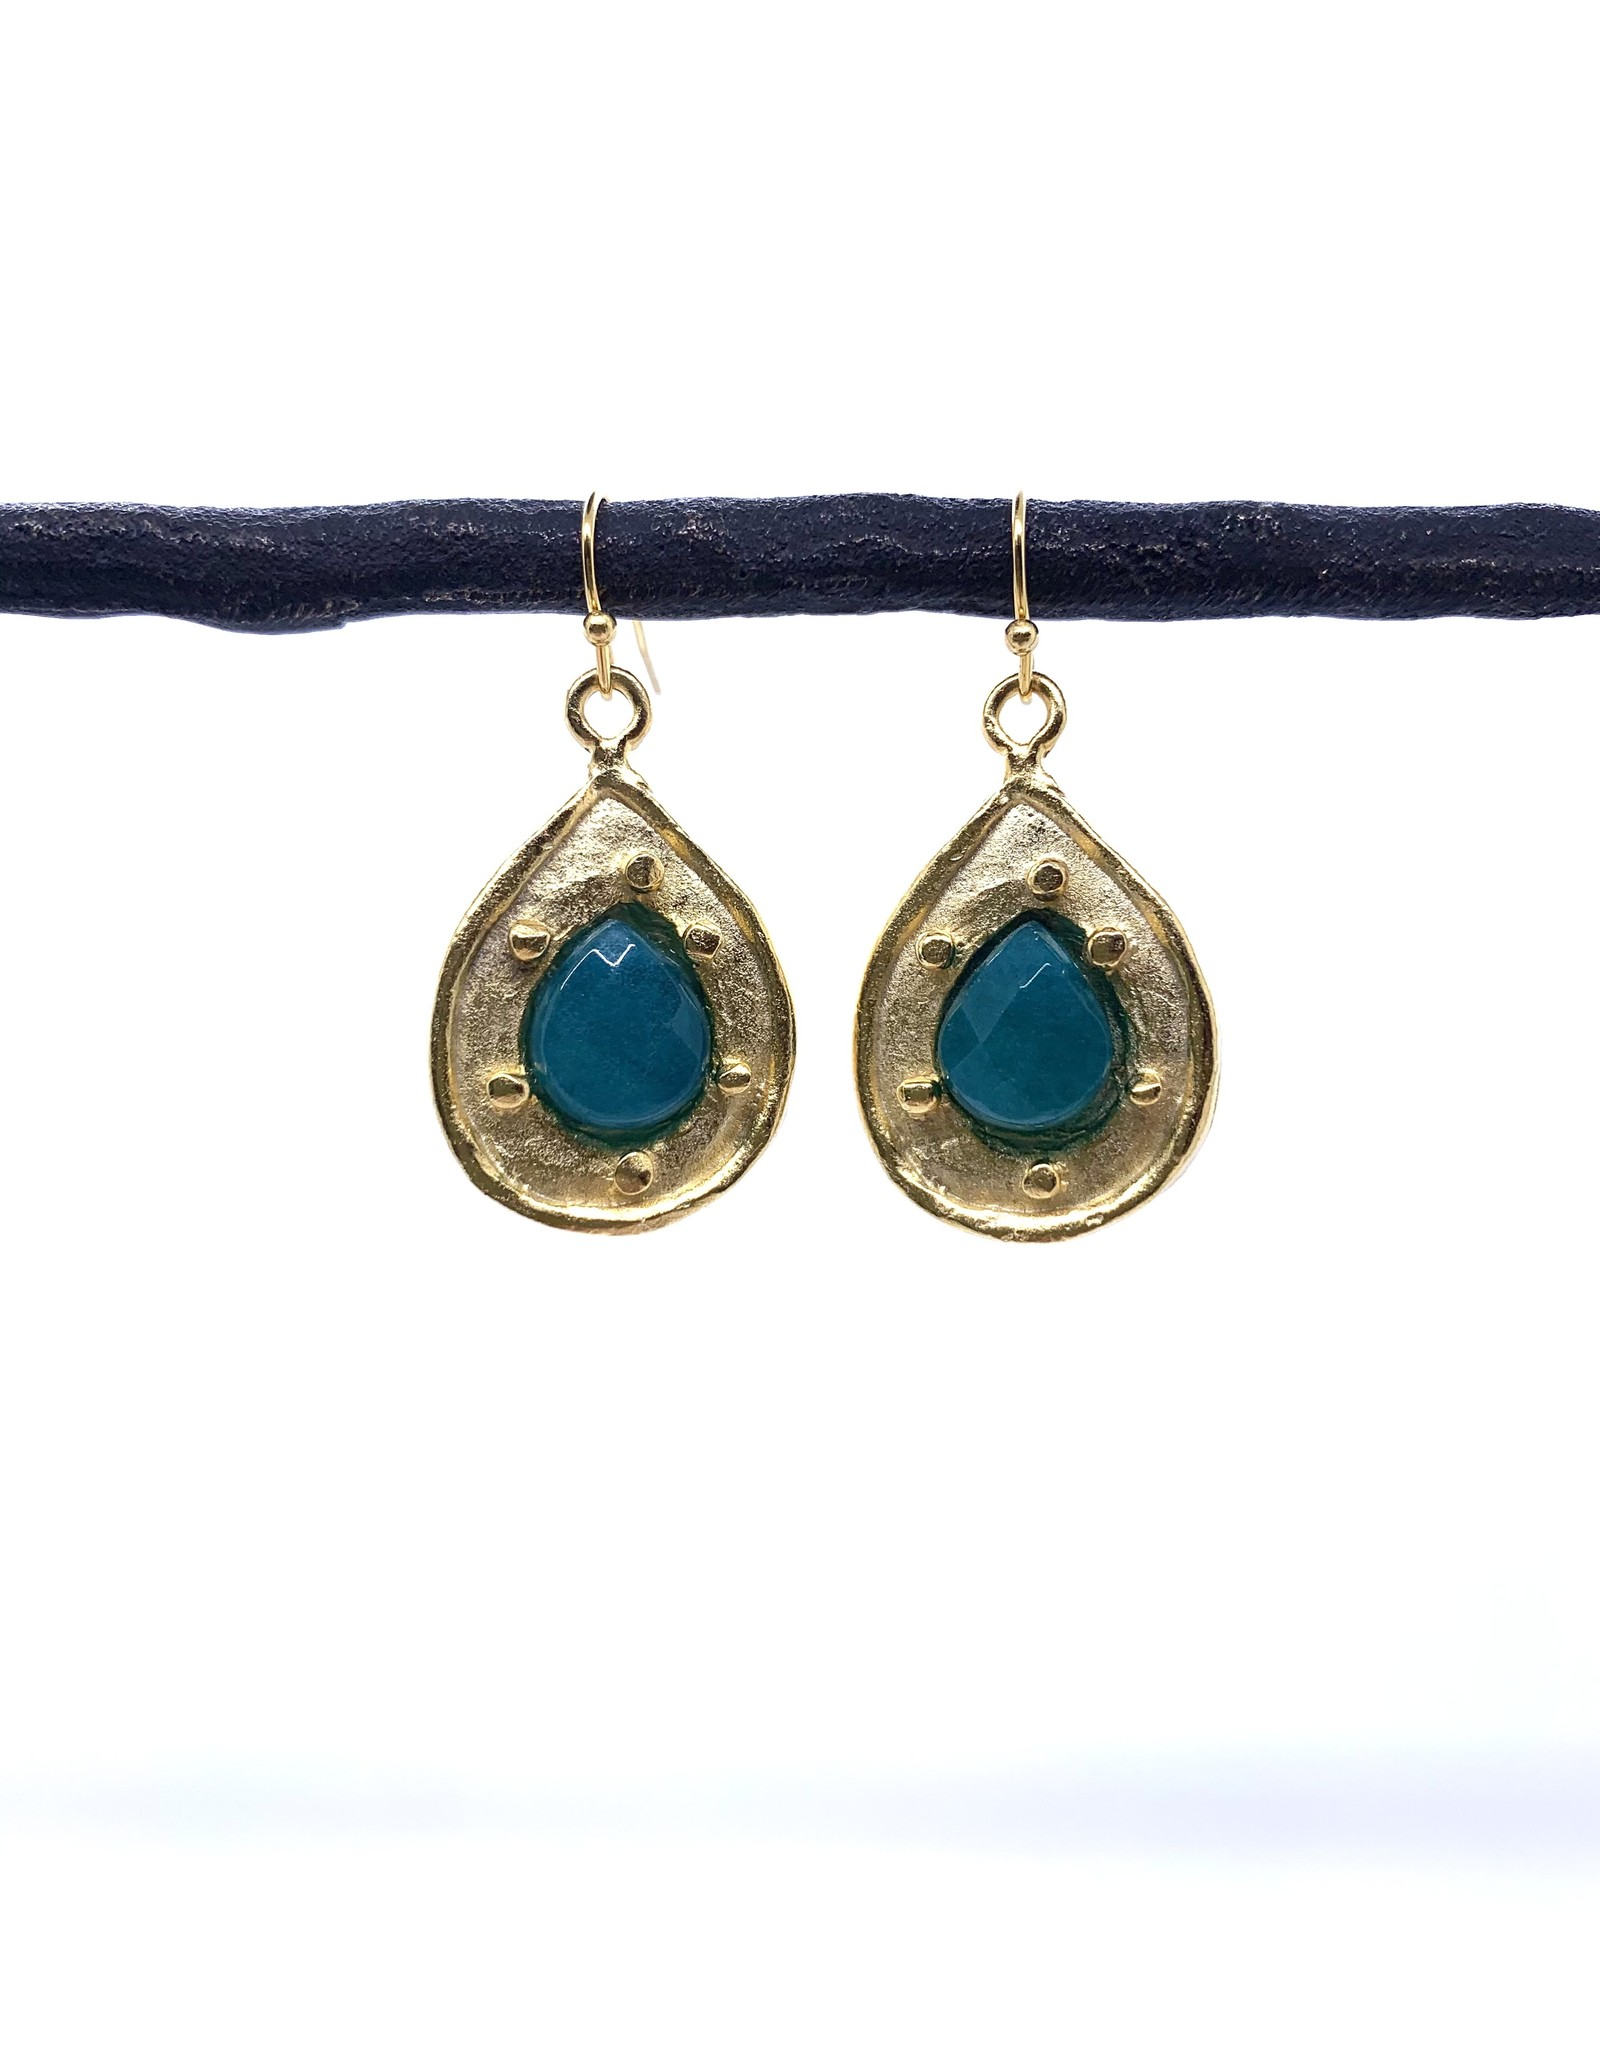 Teal and Gold Teardrop Earring